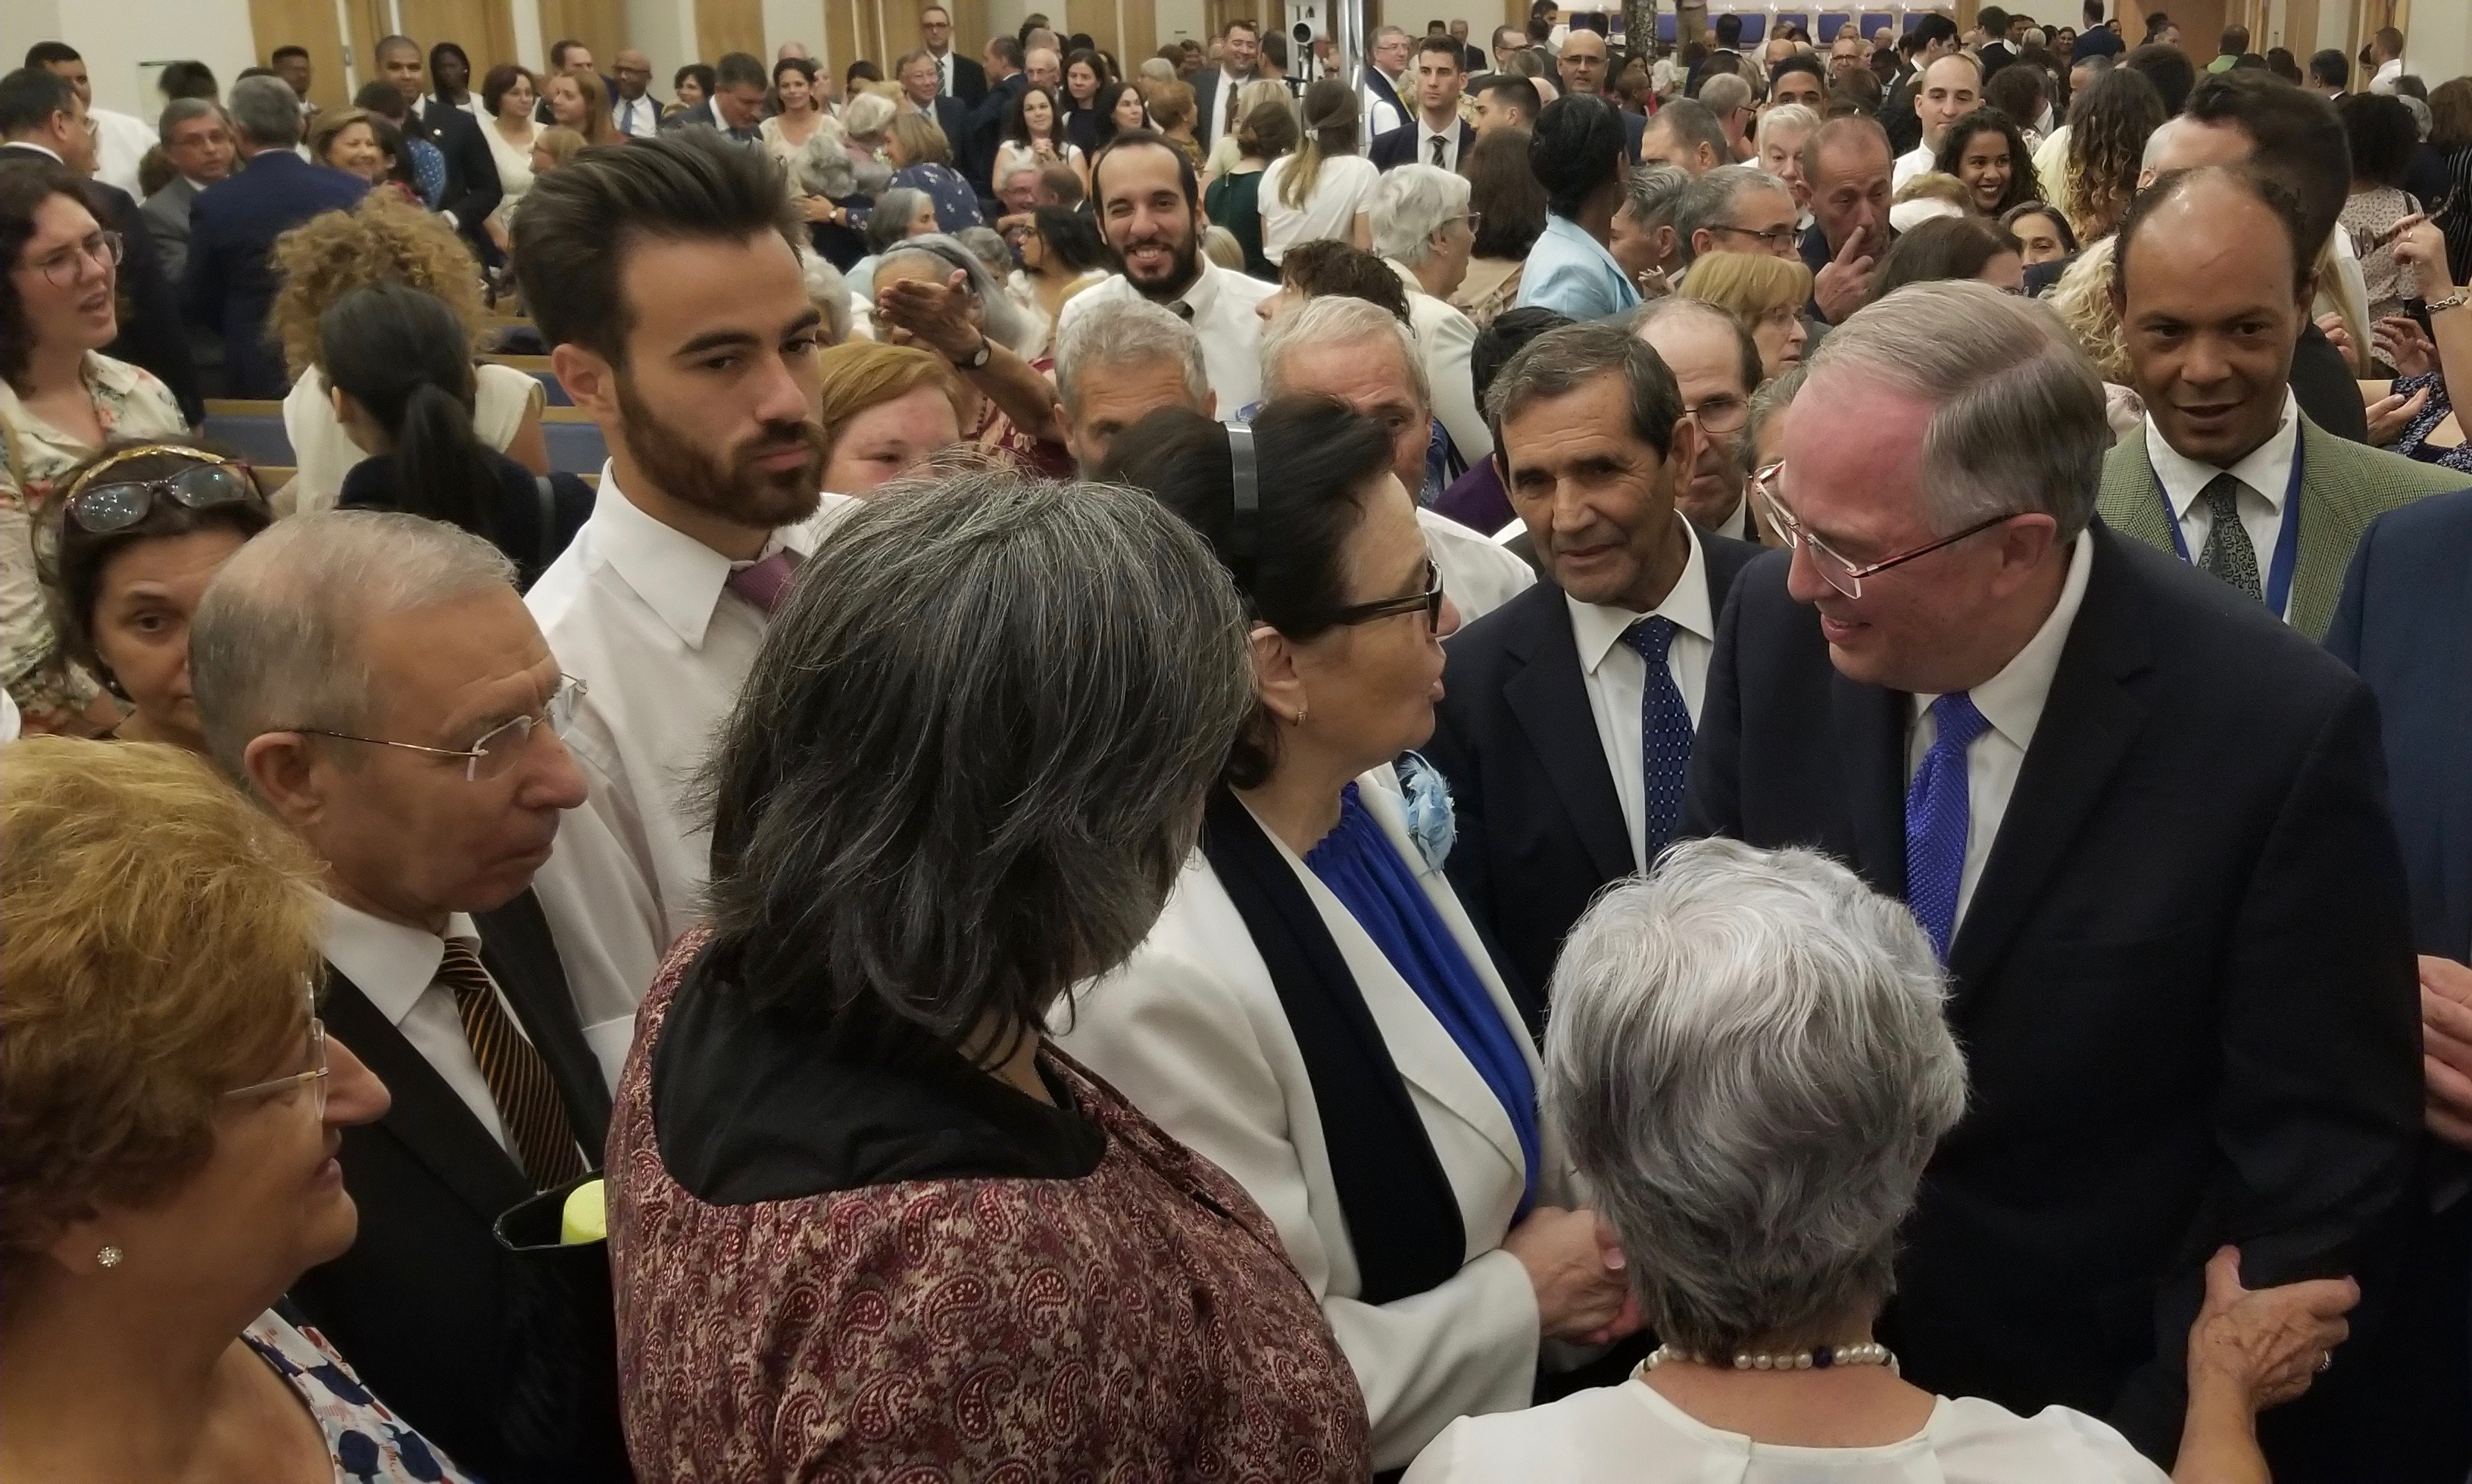 Elder Neil L. Andersen of the Quorum of the Twelve Apostles, right, greets individuals following a meeting with Portugal's pioneer Latter-day Saints on Saturday, Sept. 14, 2019, in Lisbon. The crowd of members in the meetinghouse chapel waiting to meet him is visible to his side and behind him.